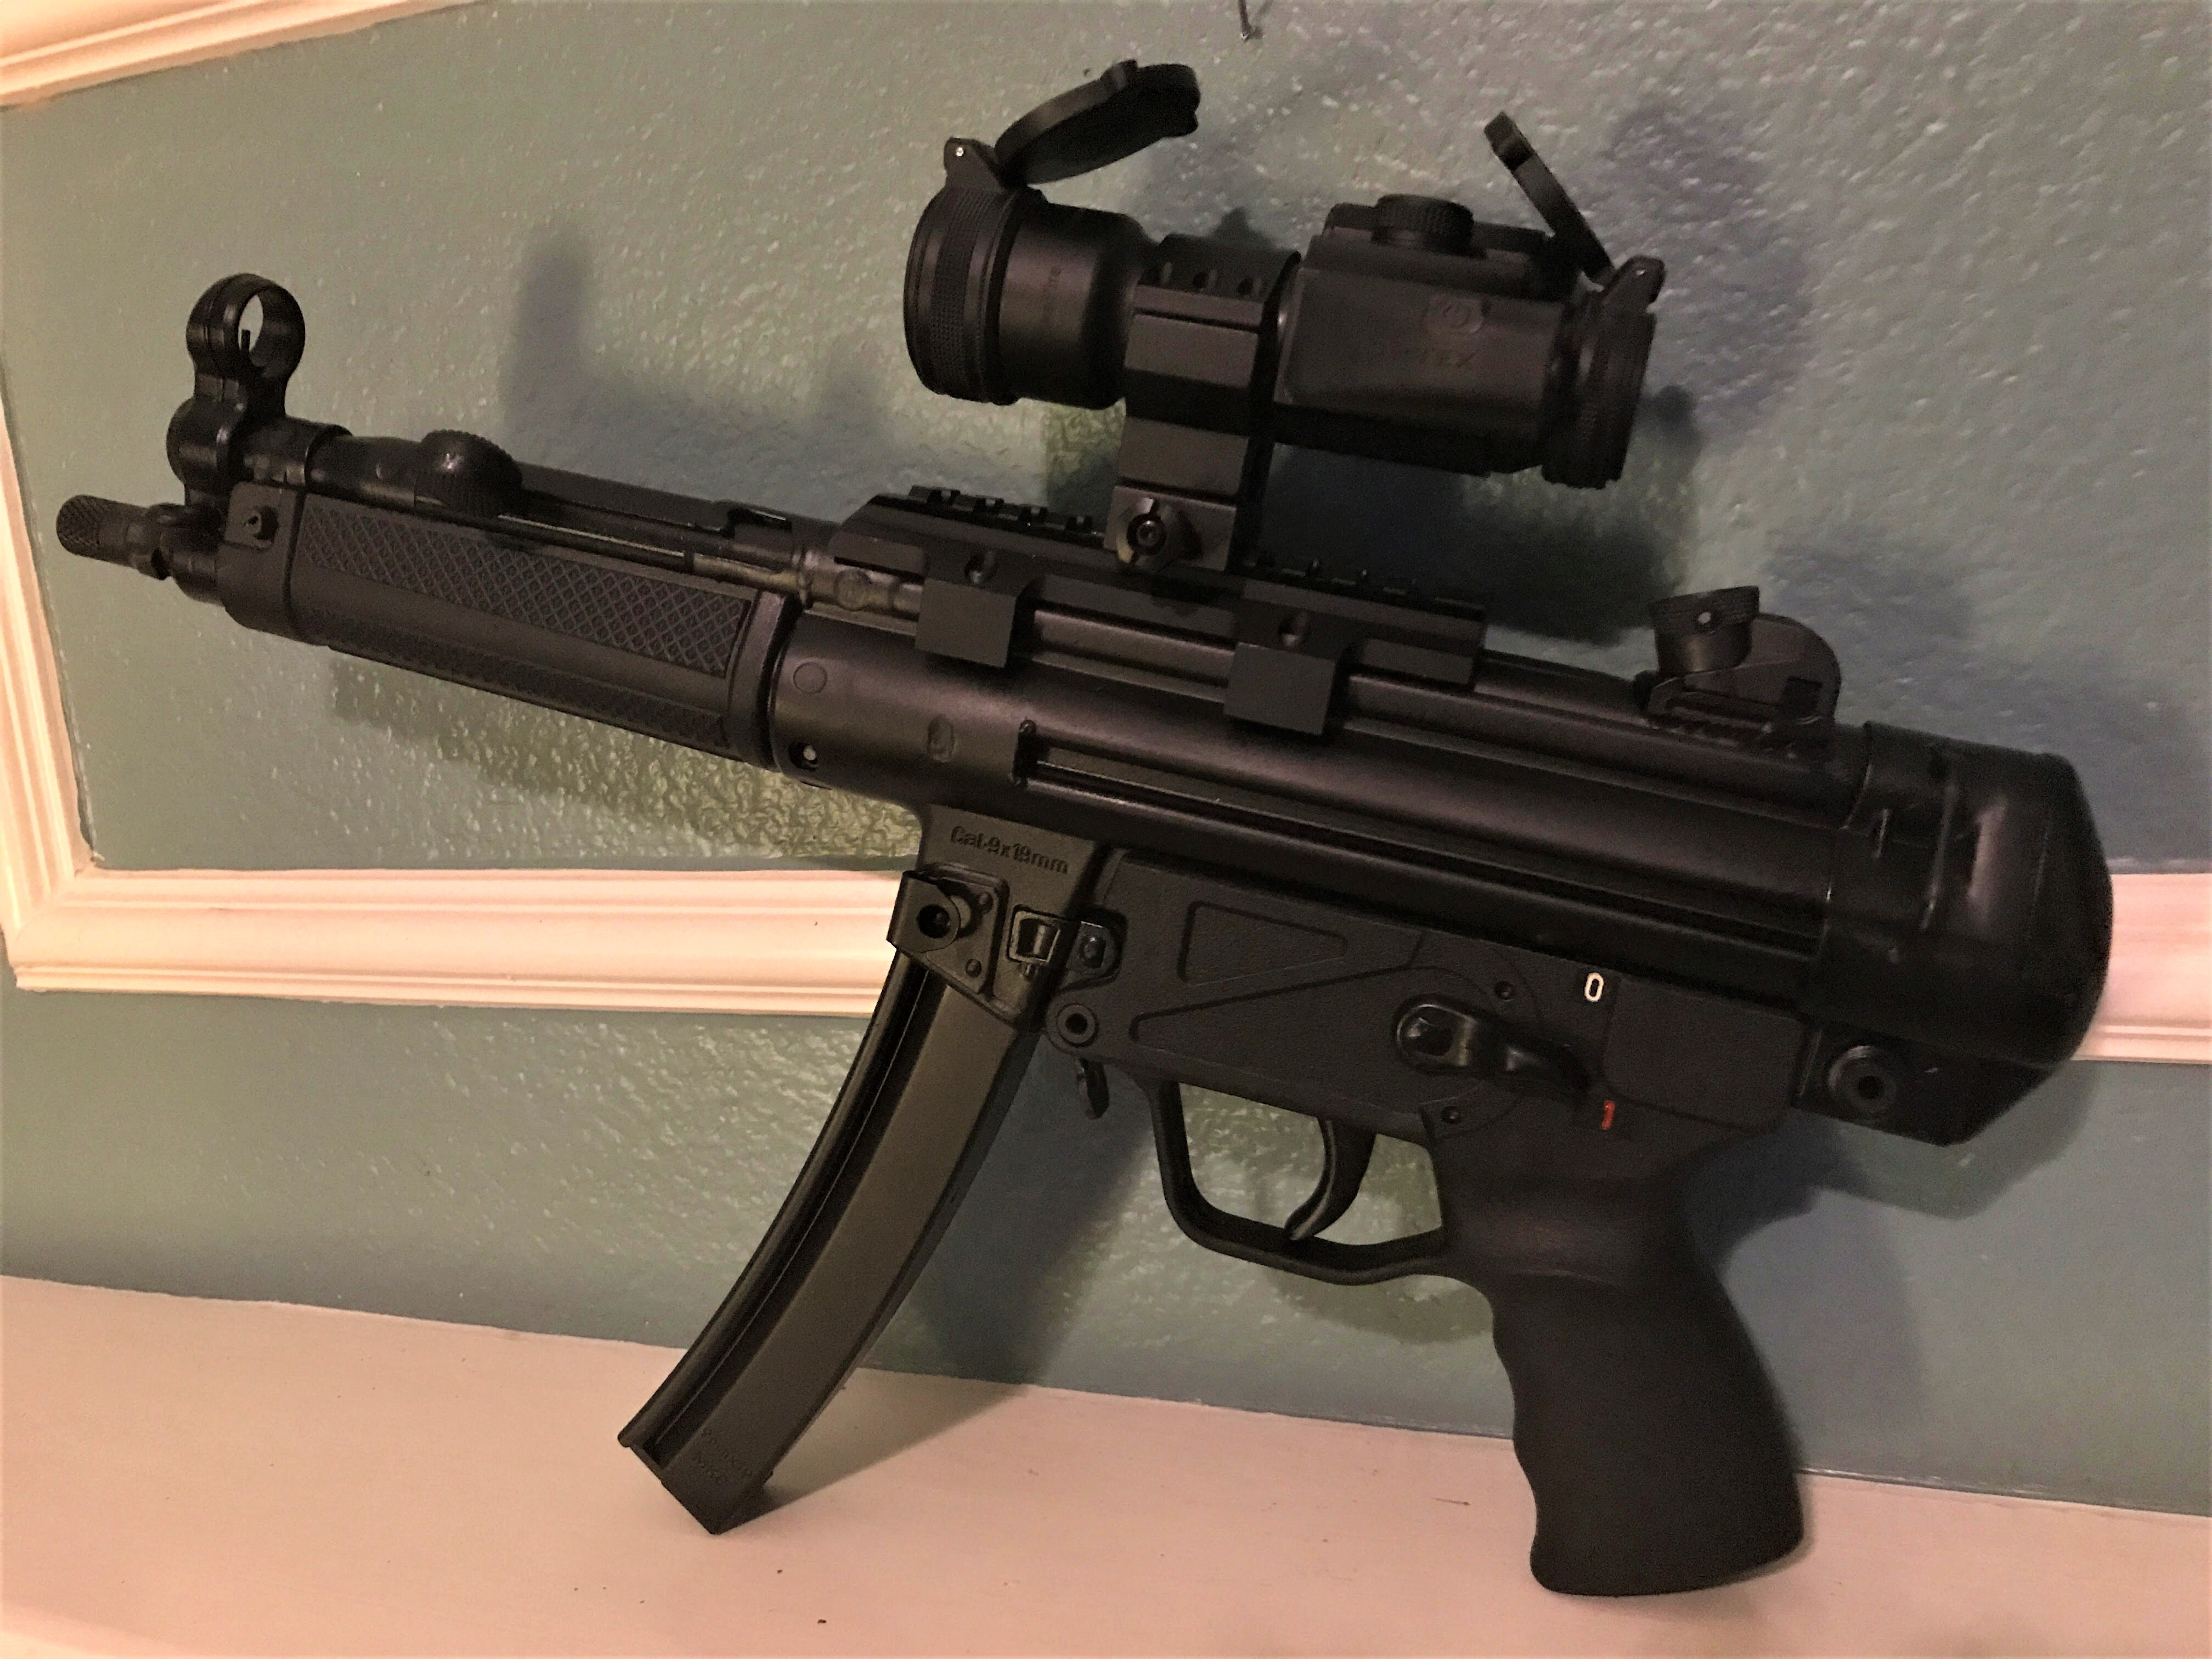 Rookie trying to get into MP5 platform-mke-mp5-2-.jpg